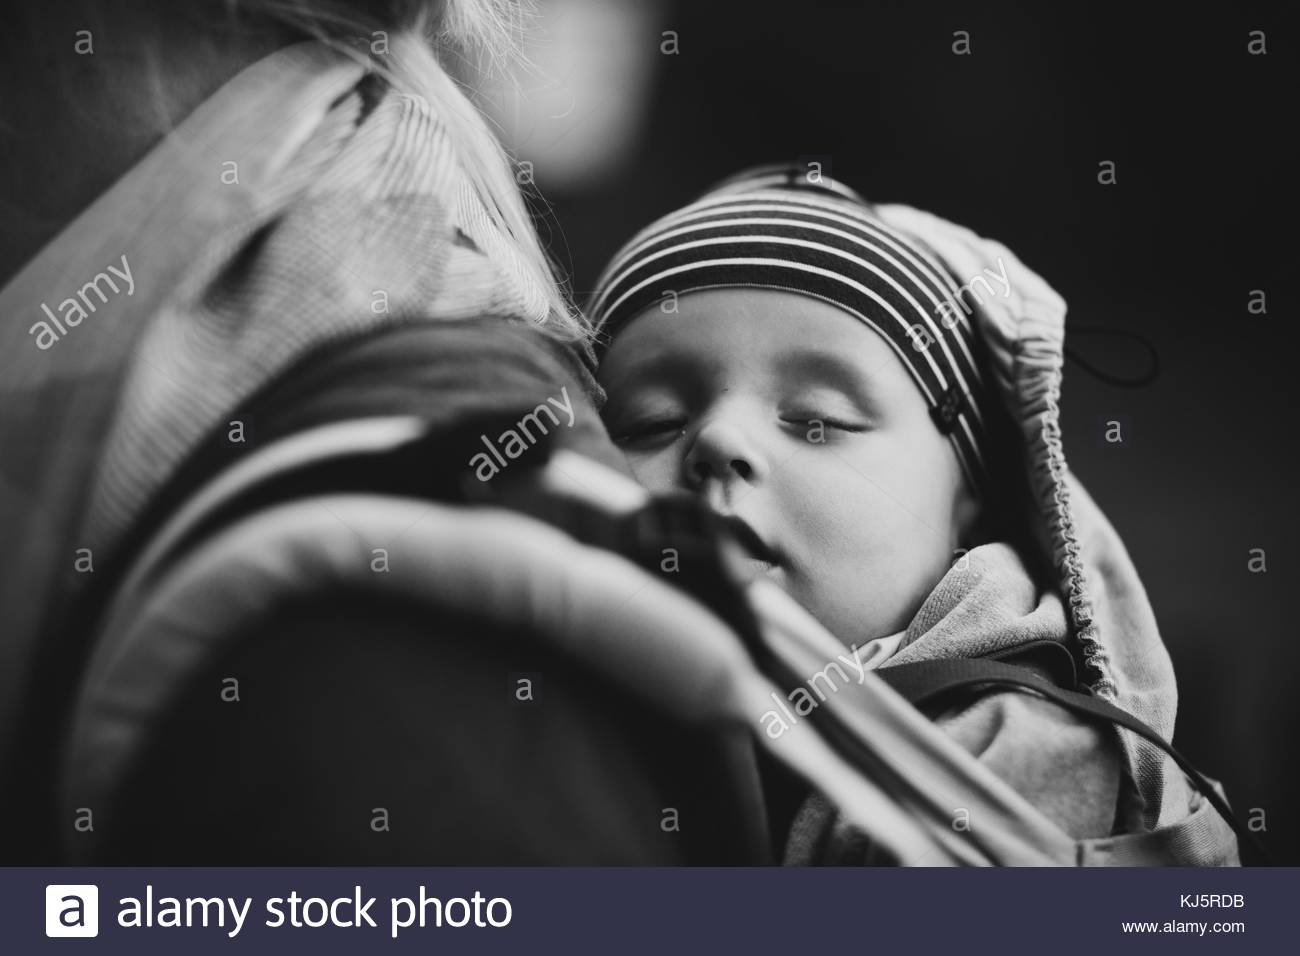 Baby sleeping in sling on mother's back - Stock Image